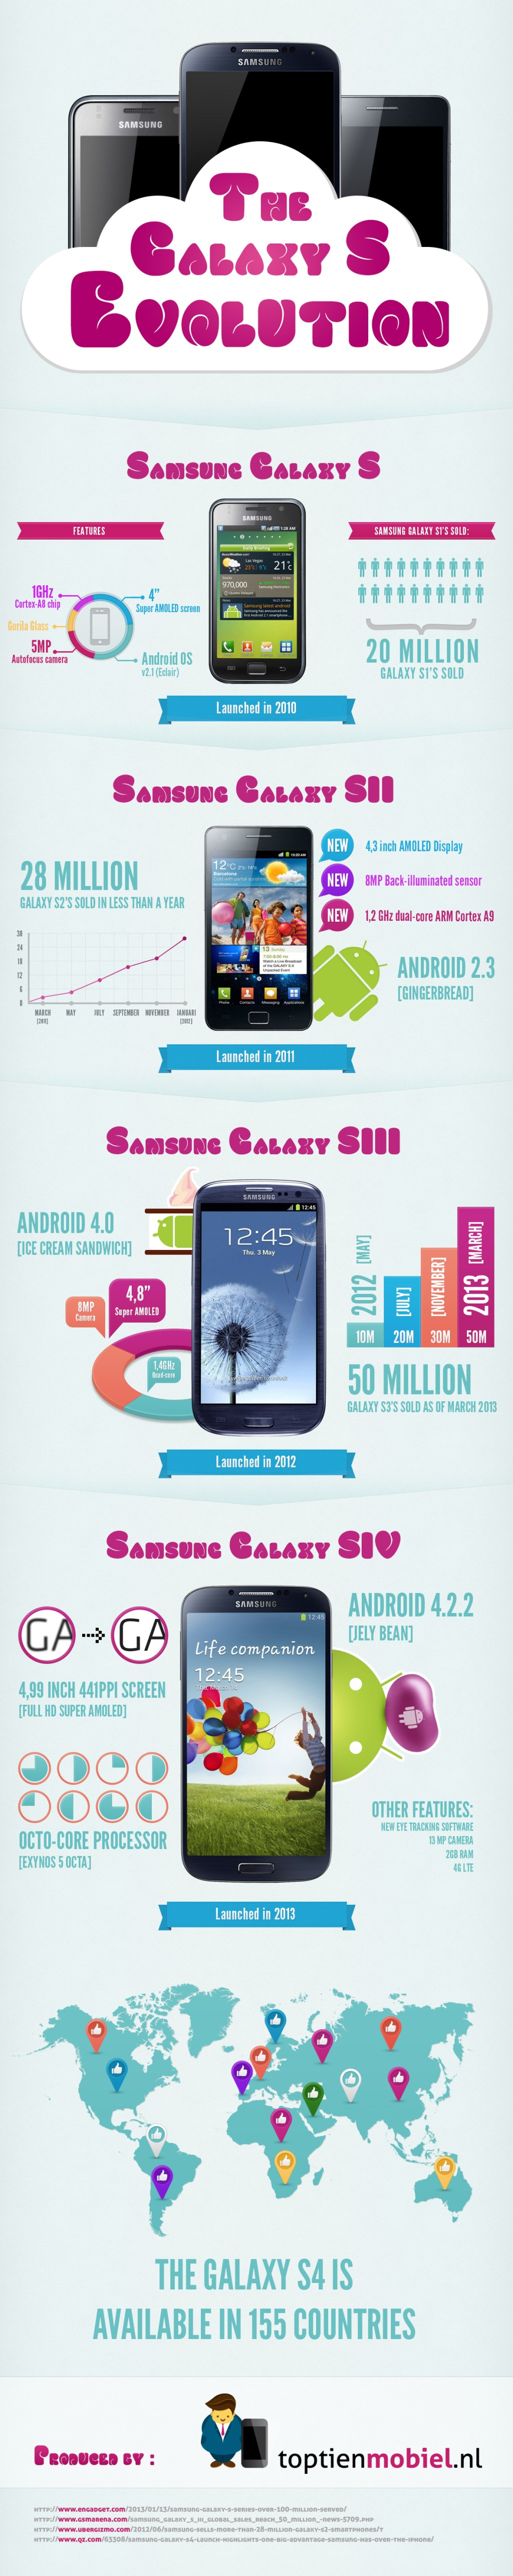 samsung-galaxy-s-evolution-infographic-1